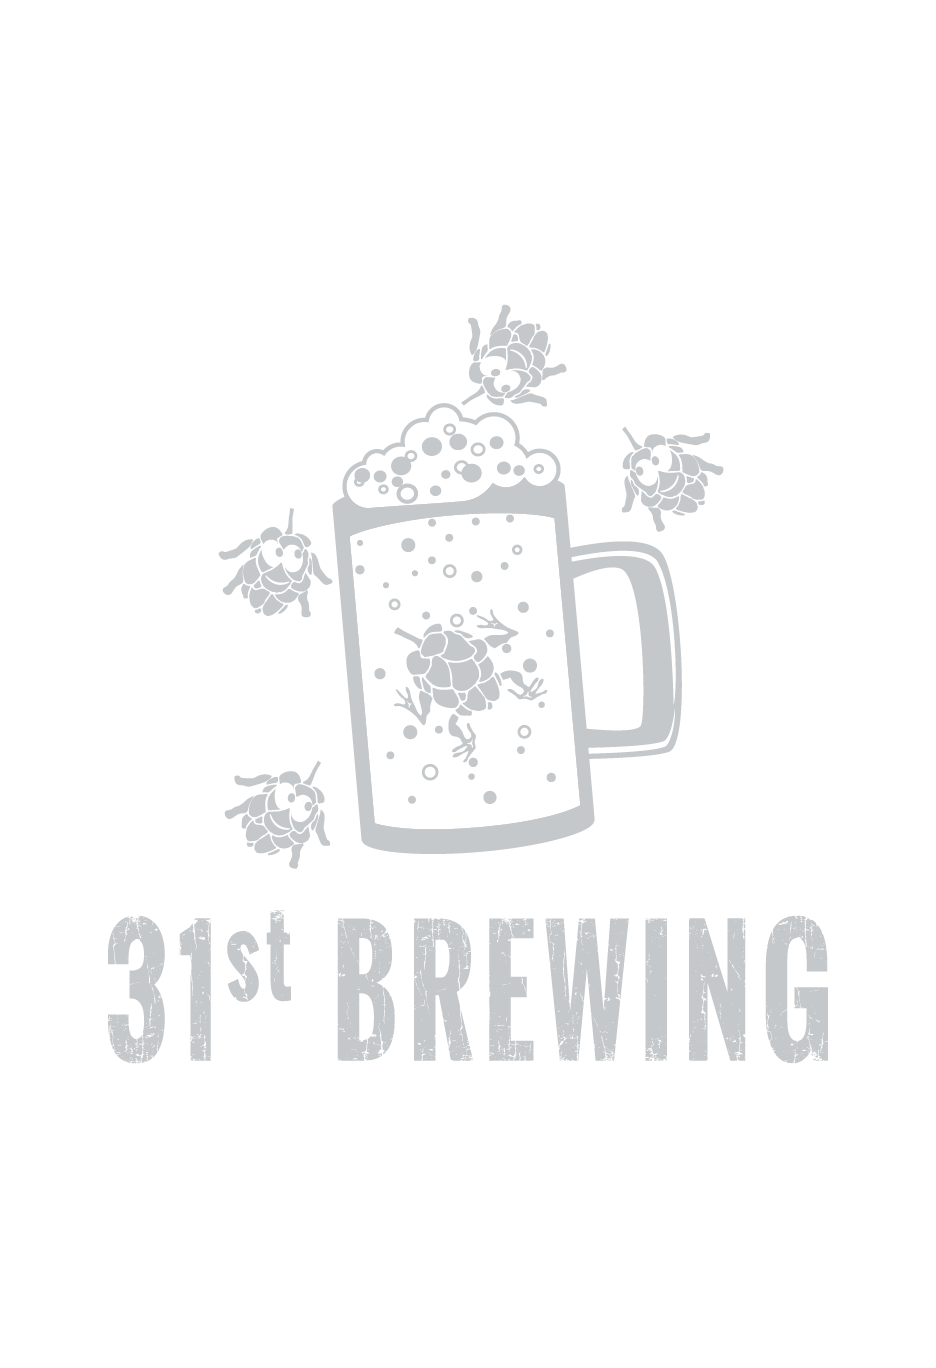 31st Brewing